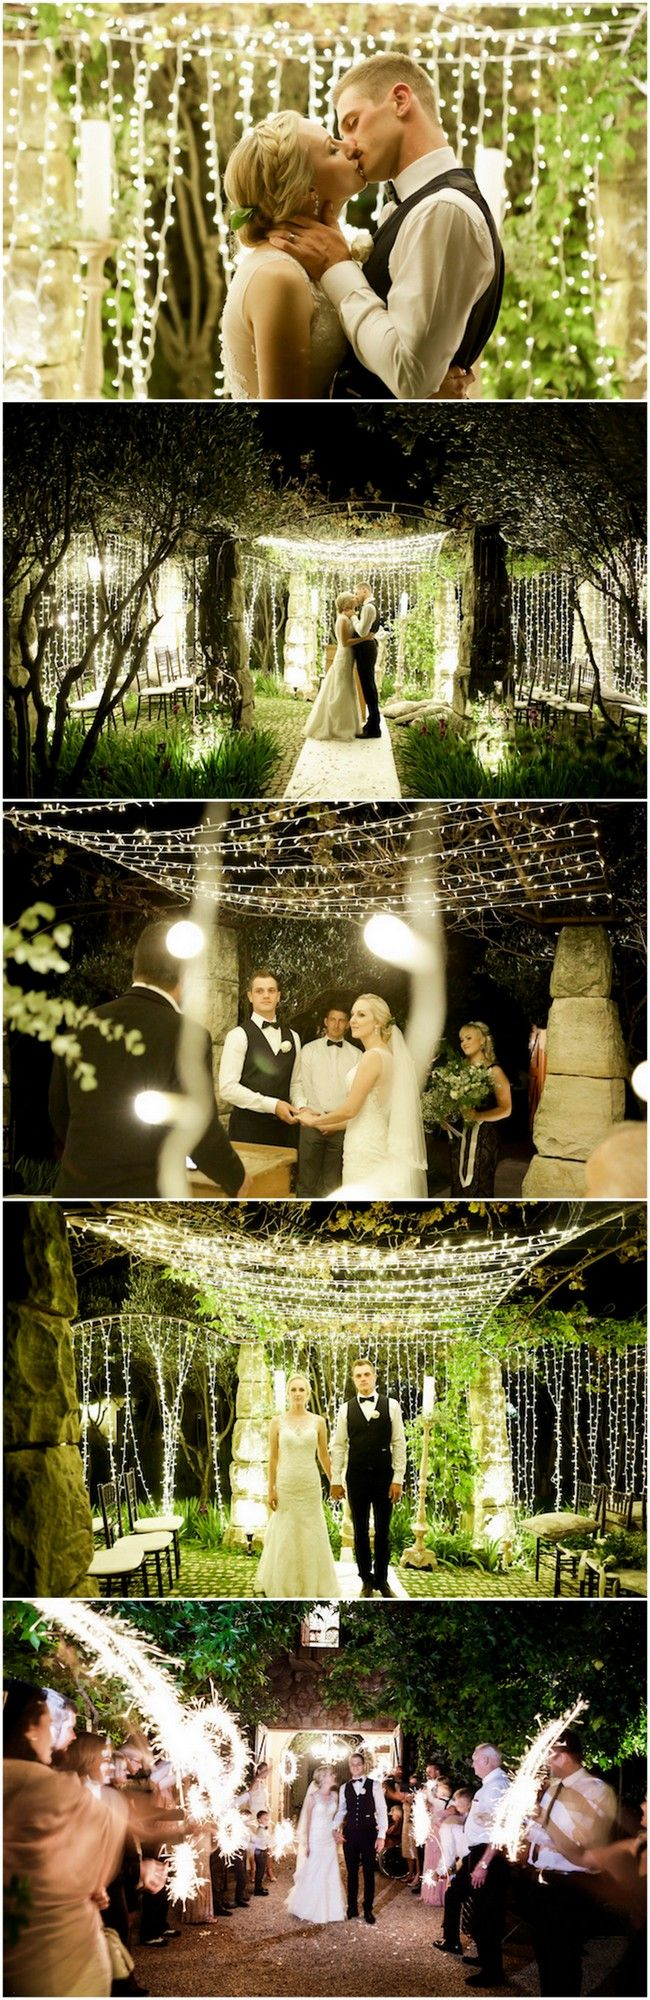 Their outdoor night wedding ceremony set the night alight with magic thanks to twinkling fairy lights, sparklers + an intimate night wedding reception. via @confettidaydreams